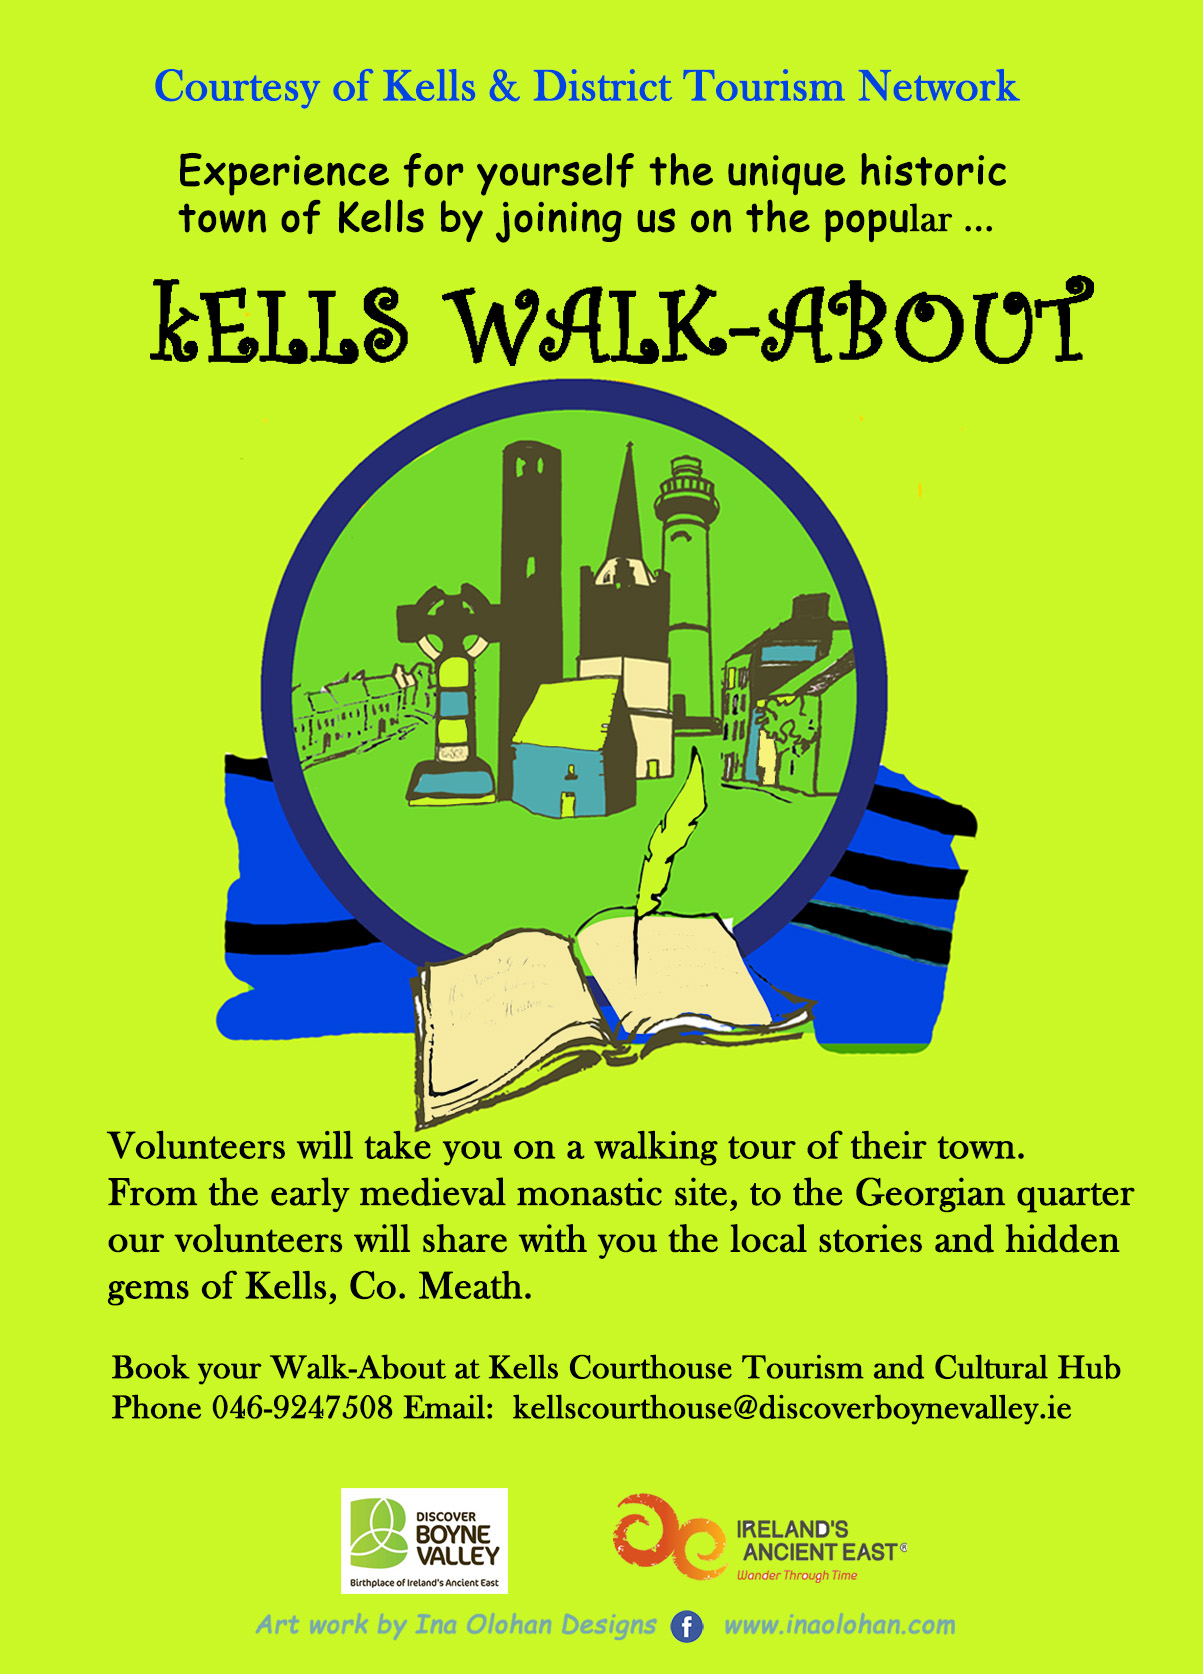 Kells Walk About Tours Image